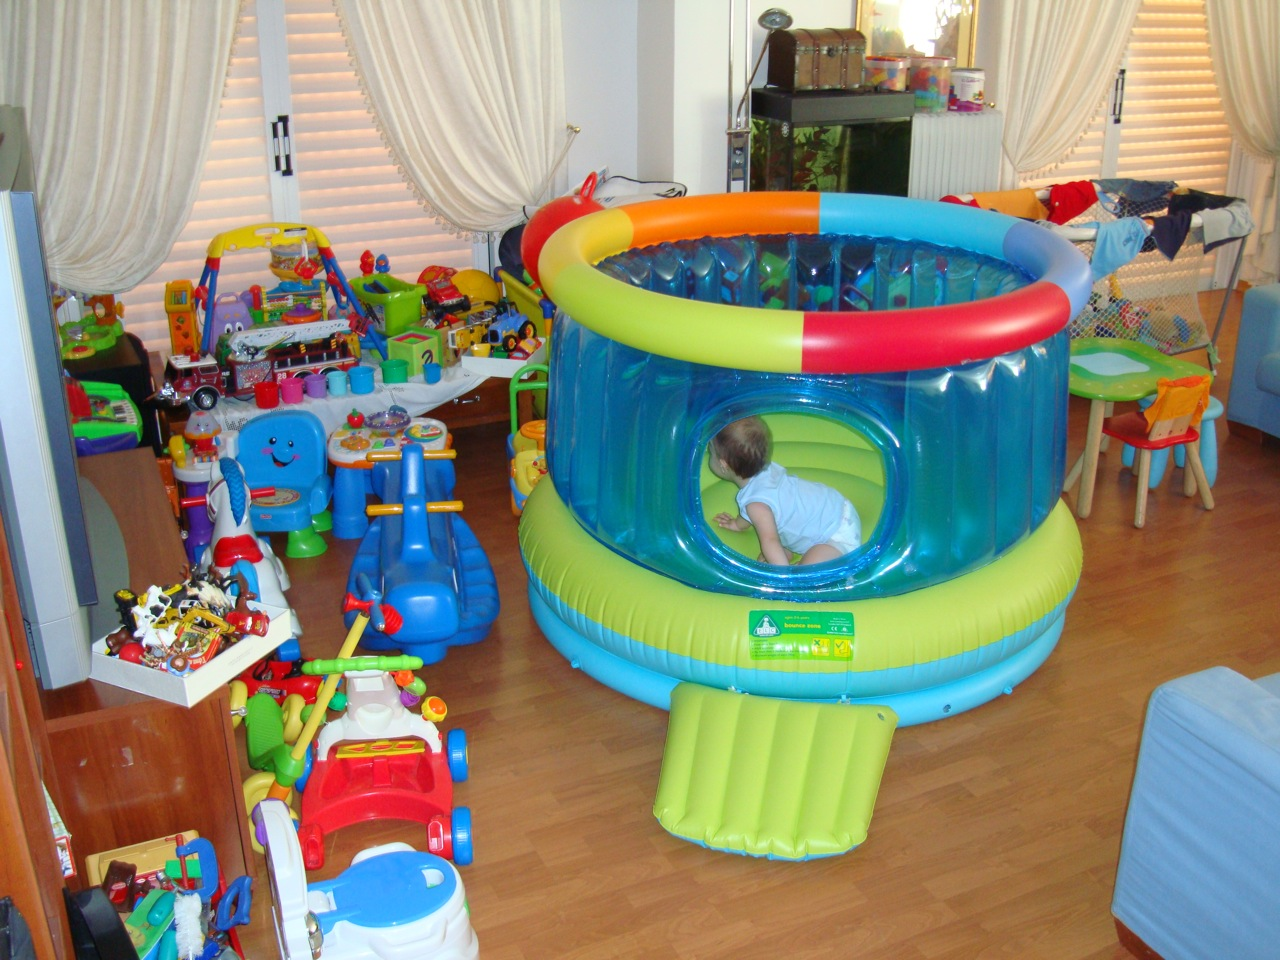 A Full With Toys Living Room Is Our Kids Heaven A Photo On